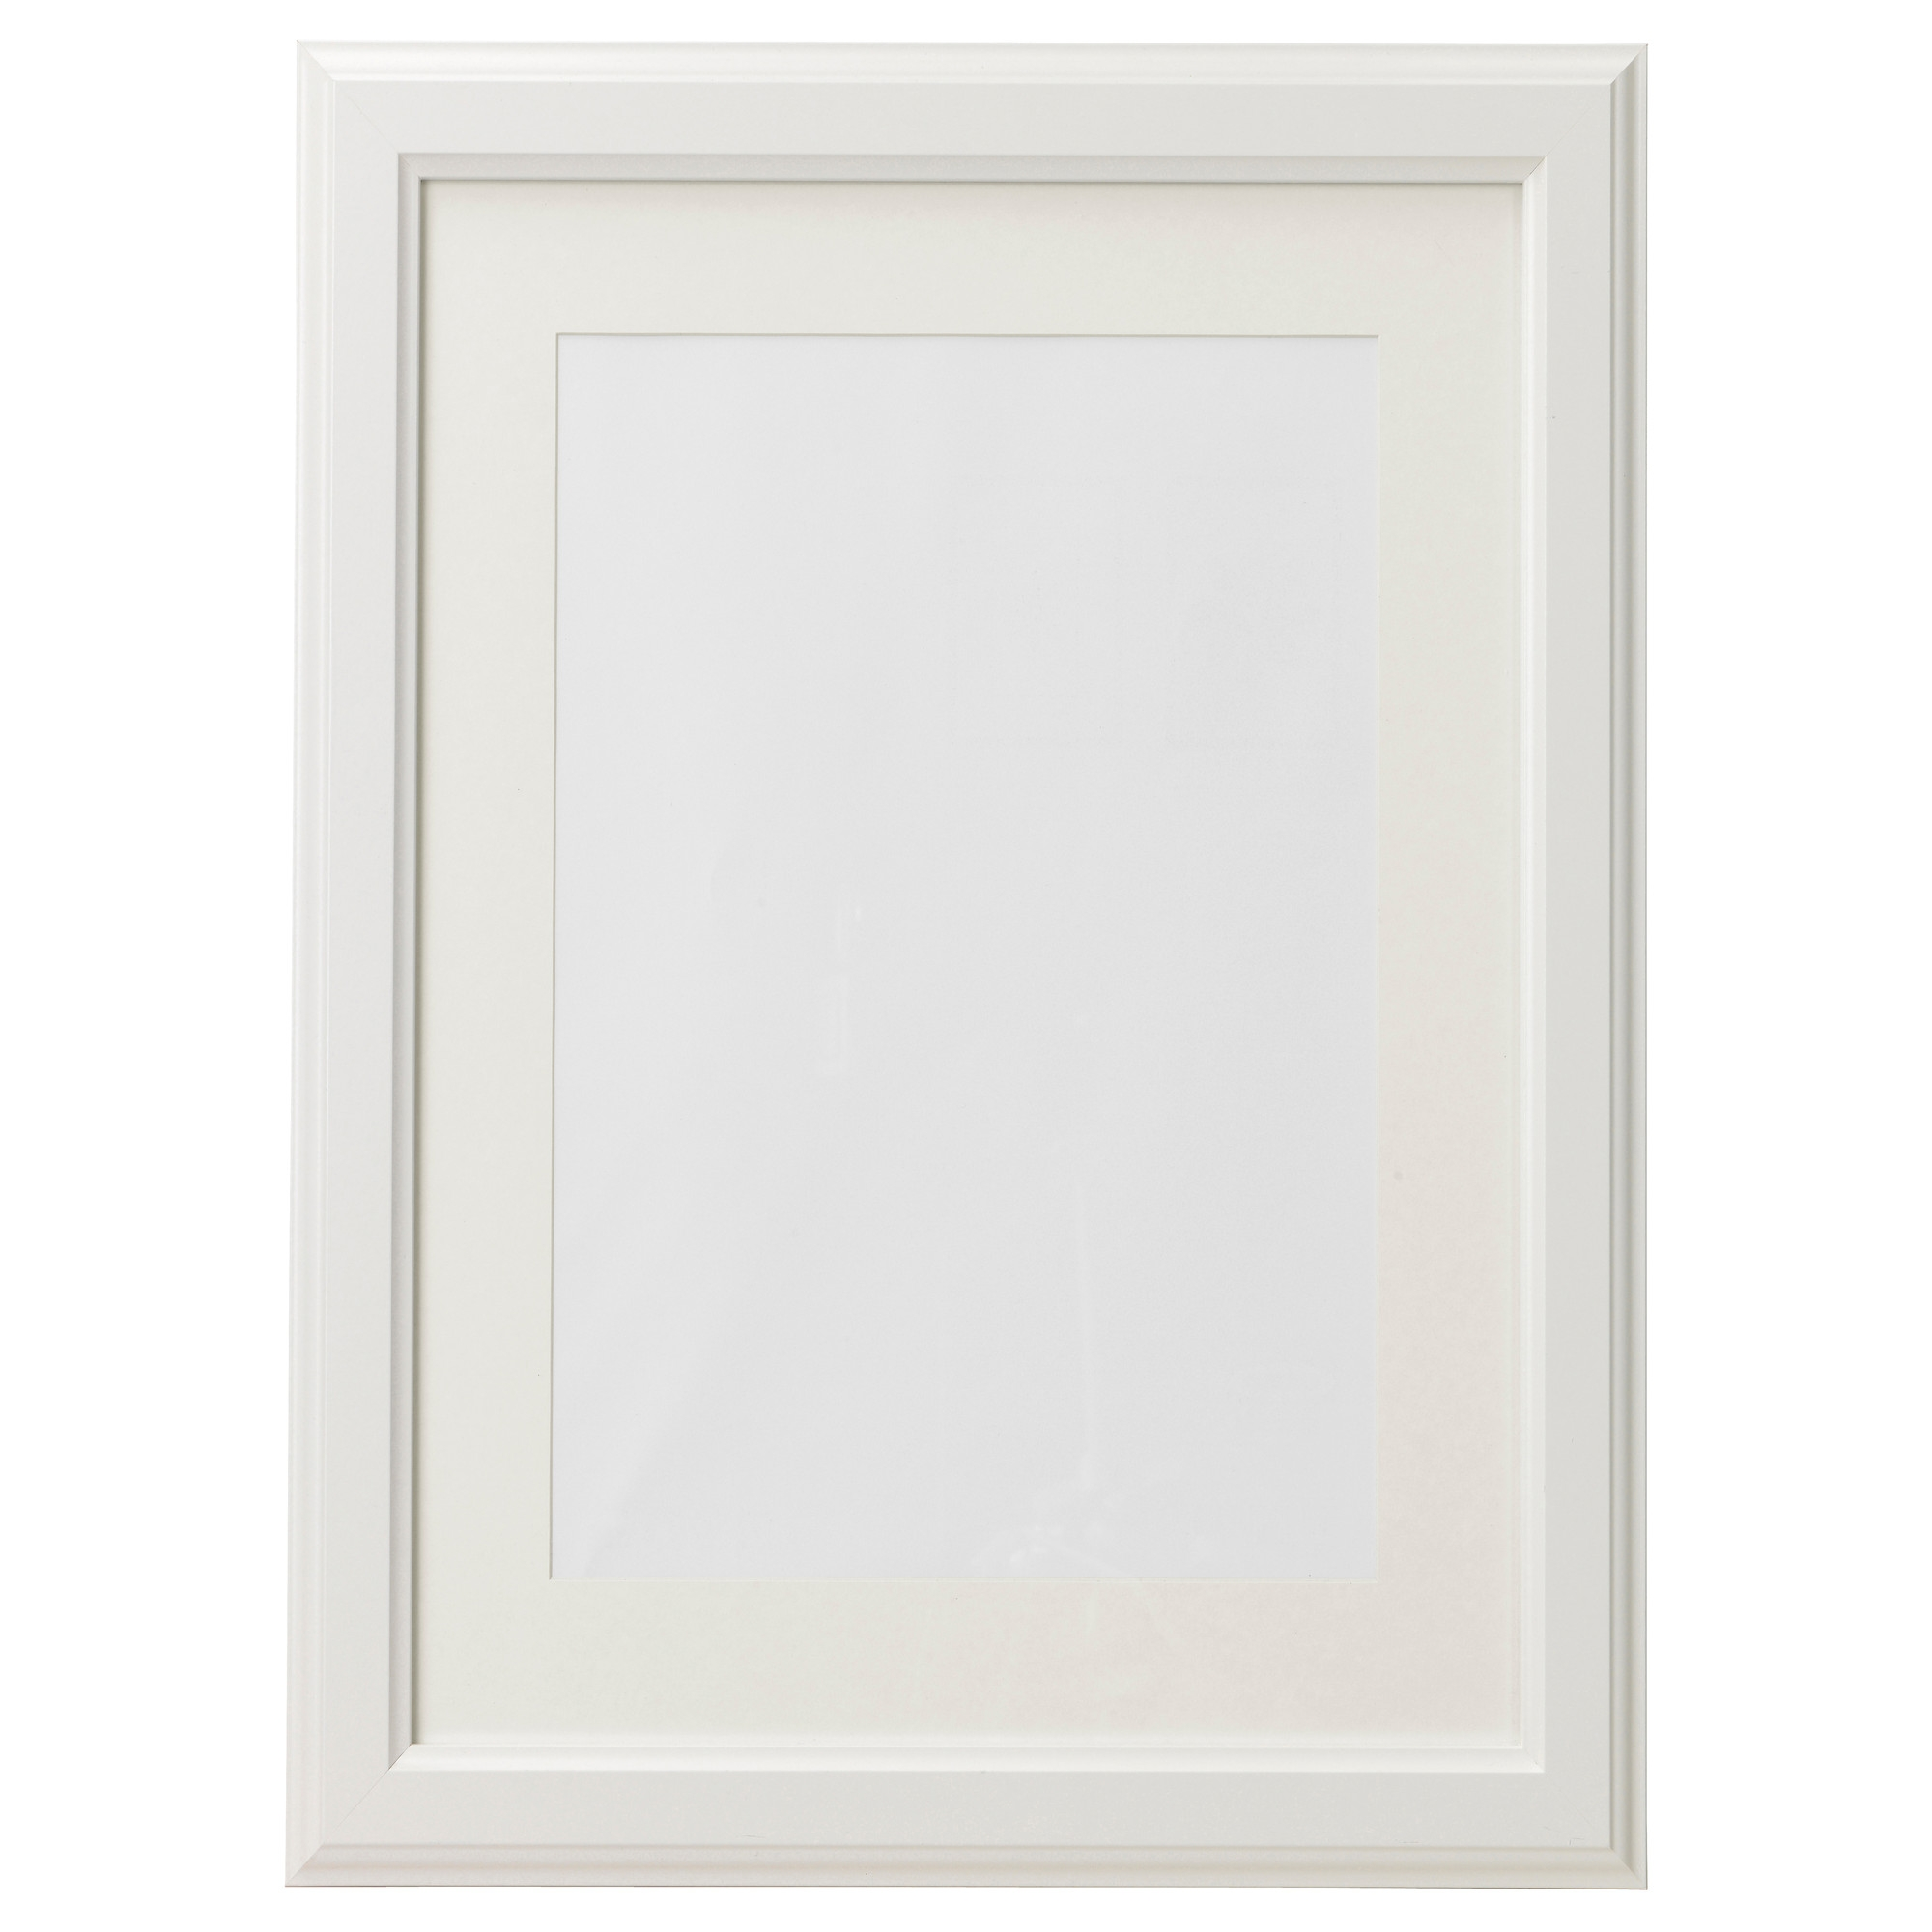 Famous Ikea Pictures And Frames Festooning - Picture Frame Ideas ...